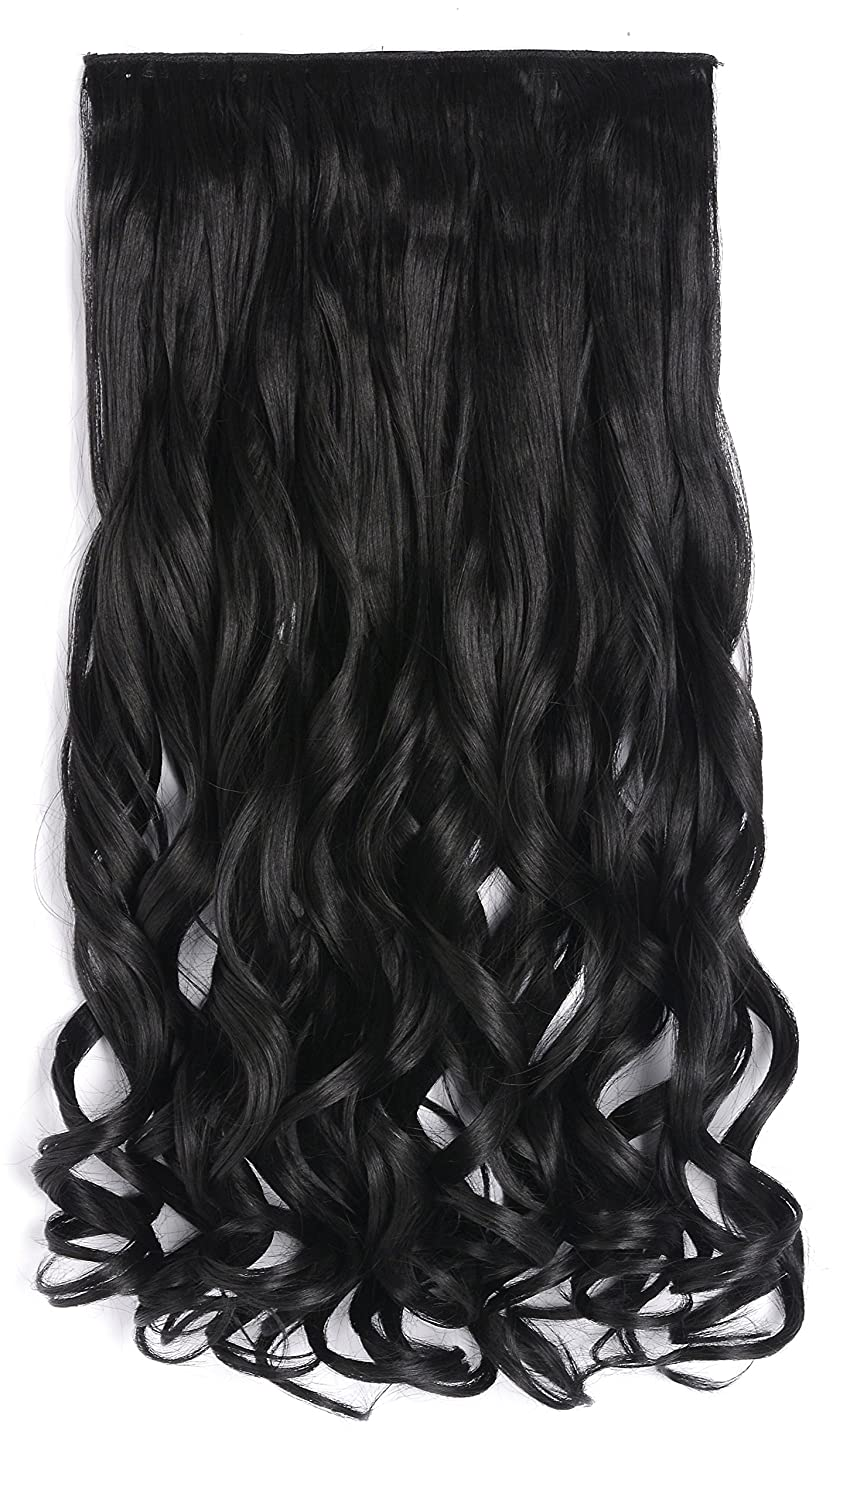 Onedor 20 Curly 34 Full Head Synthetic Hair Extensions Clip Onin